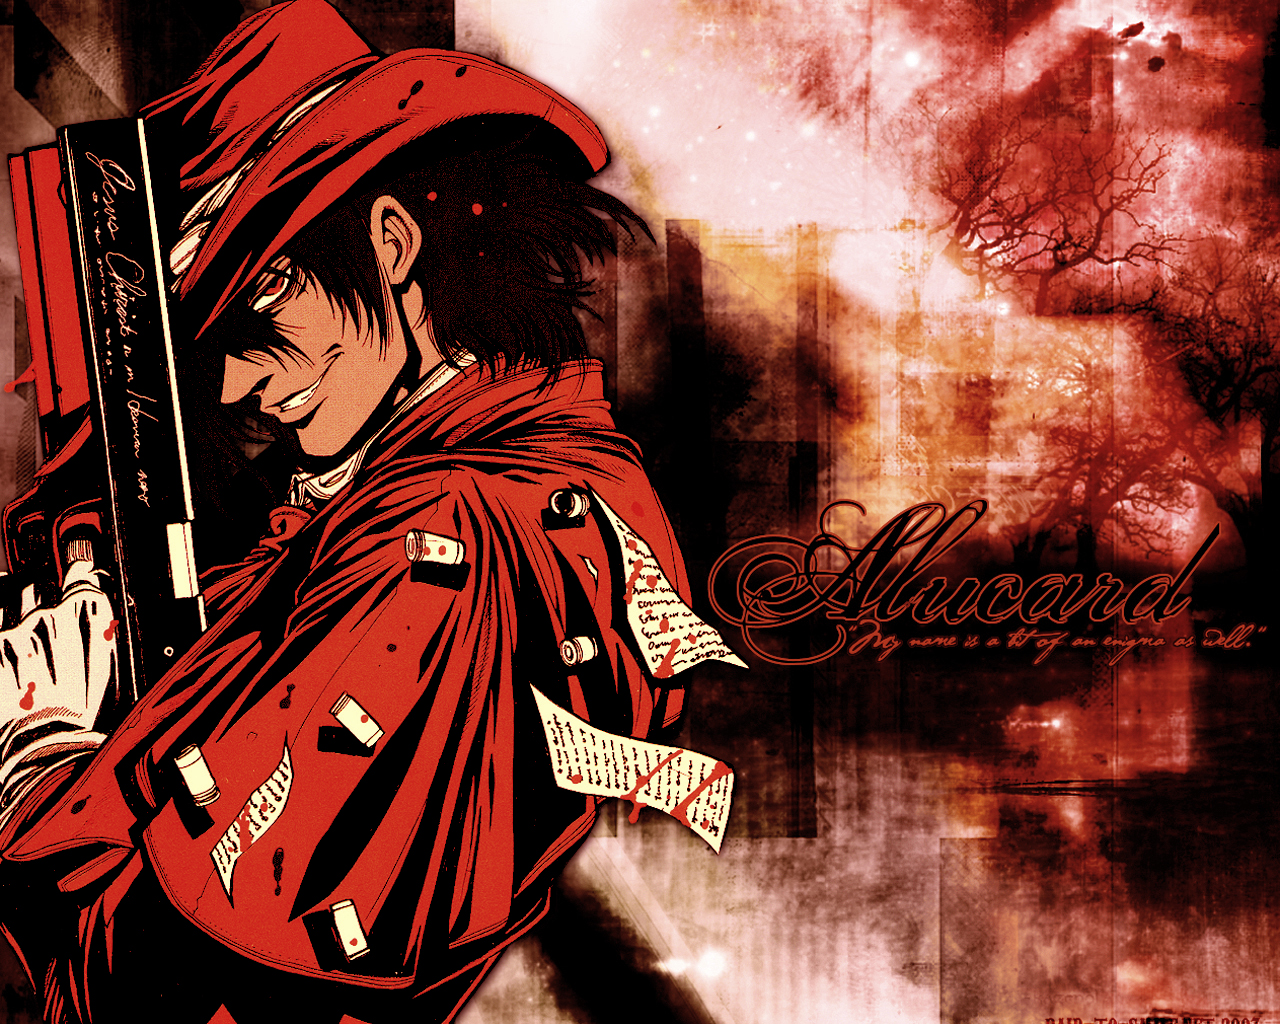 Cool Alucard Hellsing 2606909 Hd Wallpaper Backgrounds Download